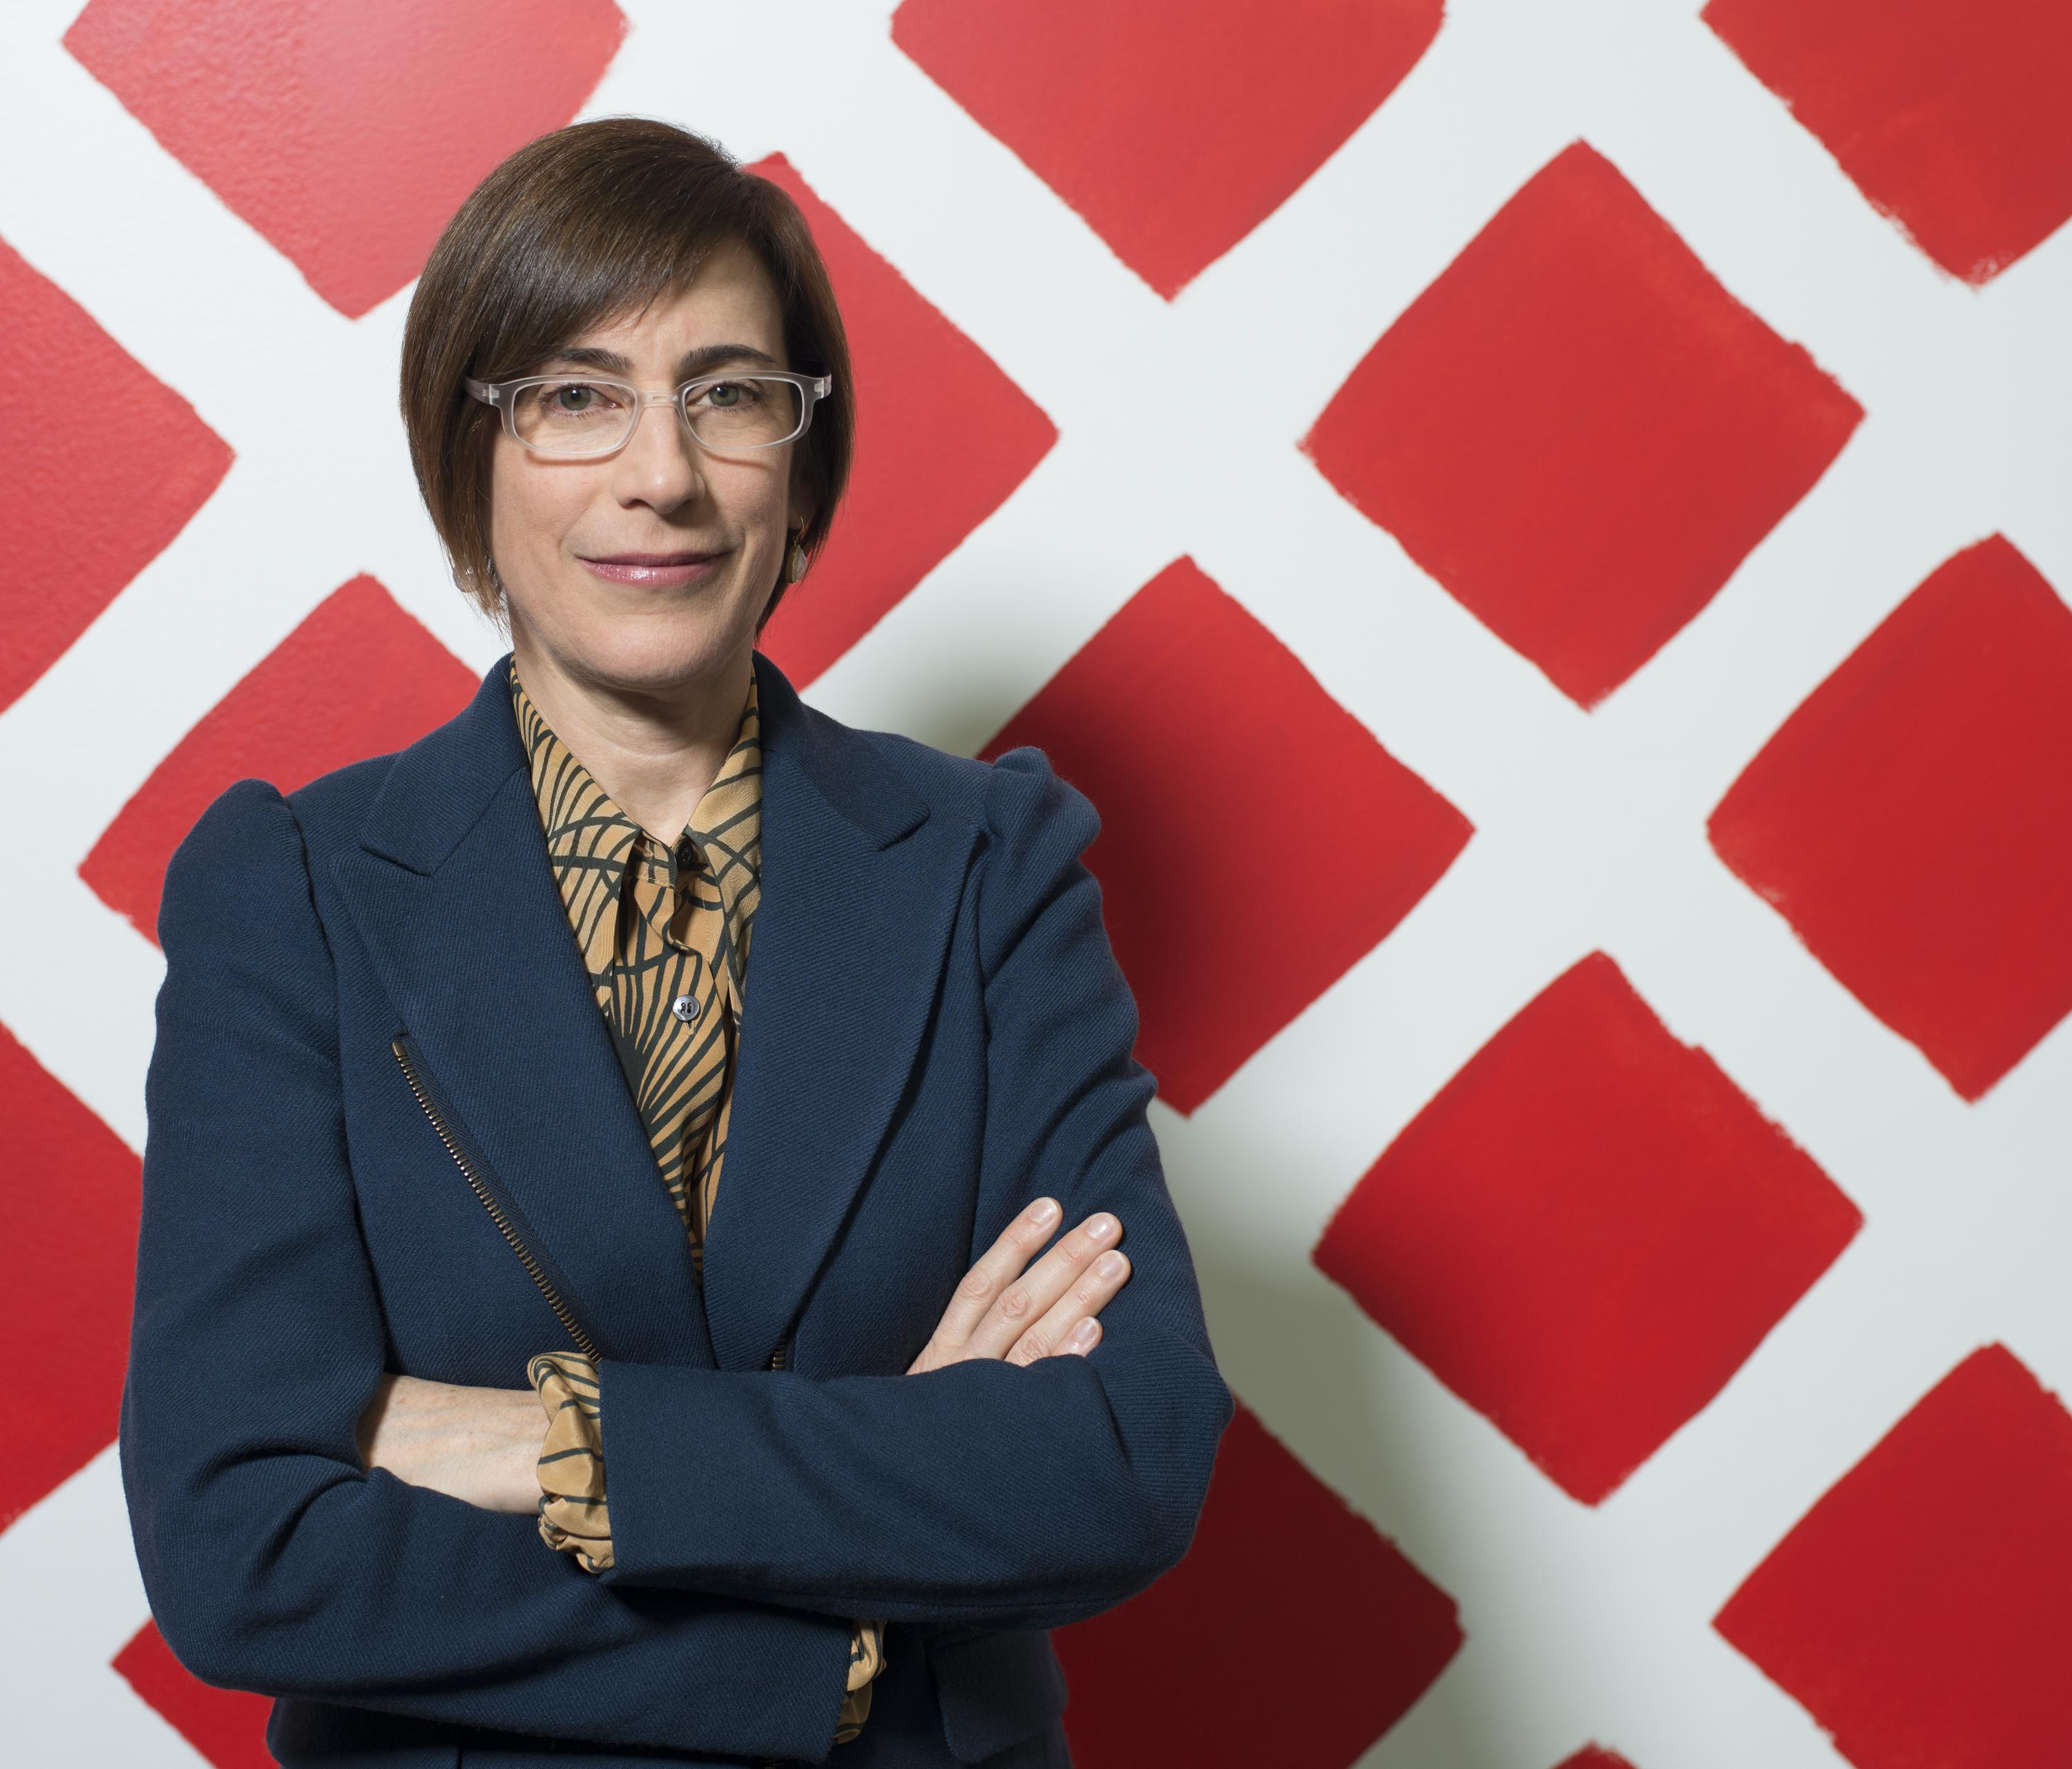 Portrait of Museum of Contemporary Art Chicago Director Madeleine Grynsztejn, wearing a blue blazer and clear plastic glasses. She stands in front of Martin Creed's wall painting, Work No. 798, which looks like a series of red diamonds painted directly on the wall.